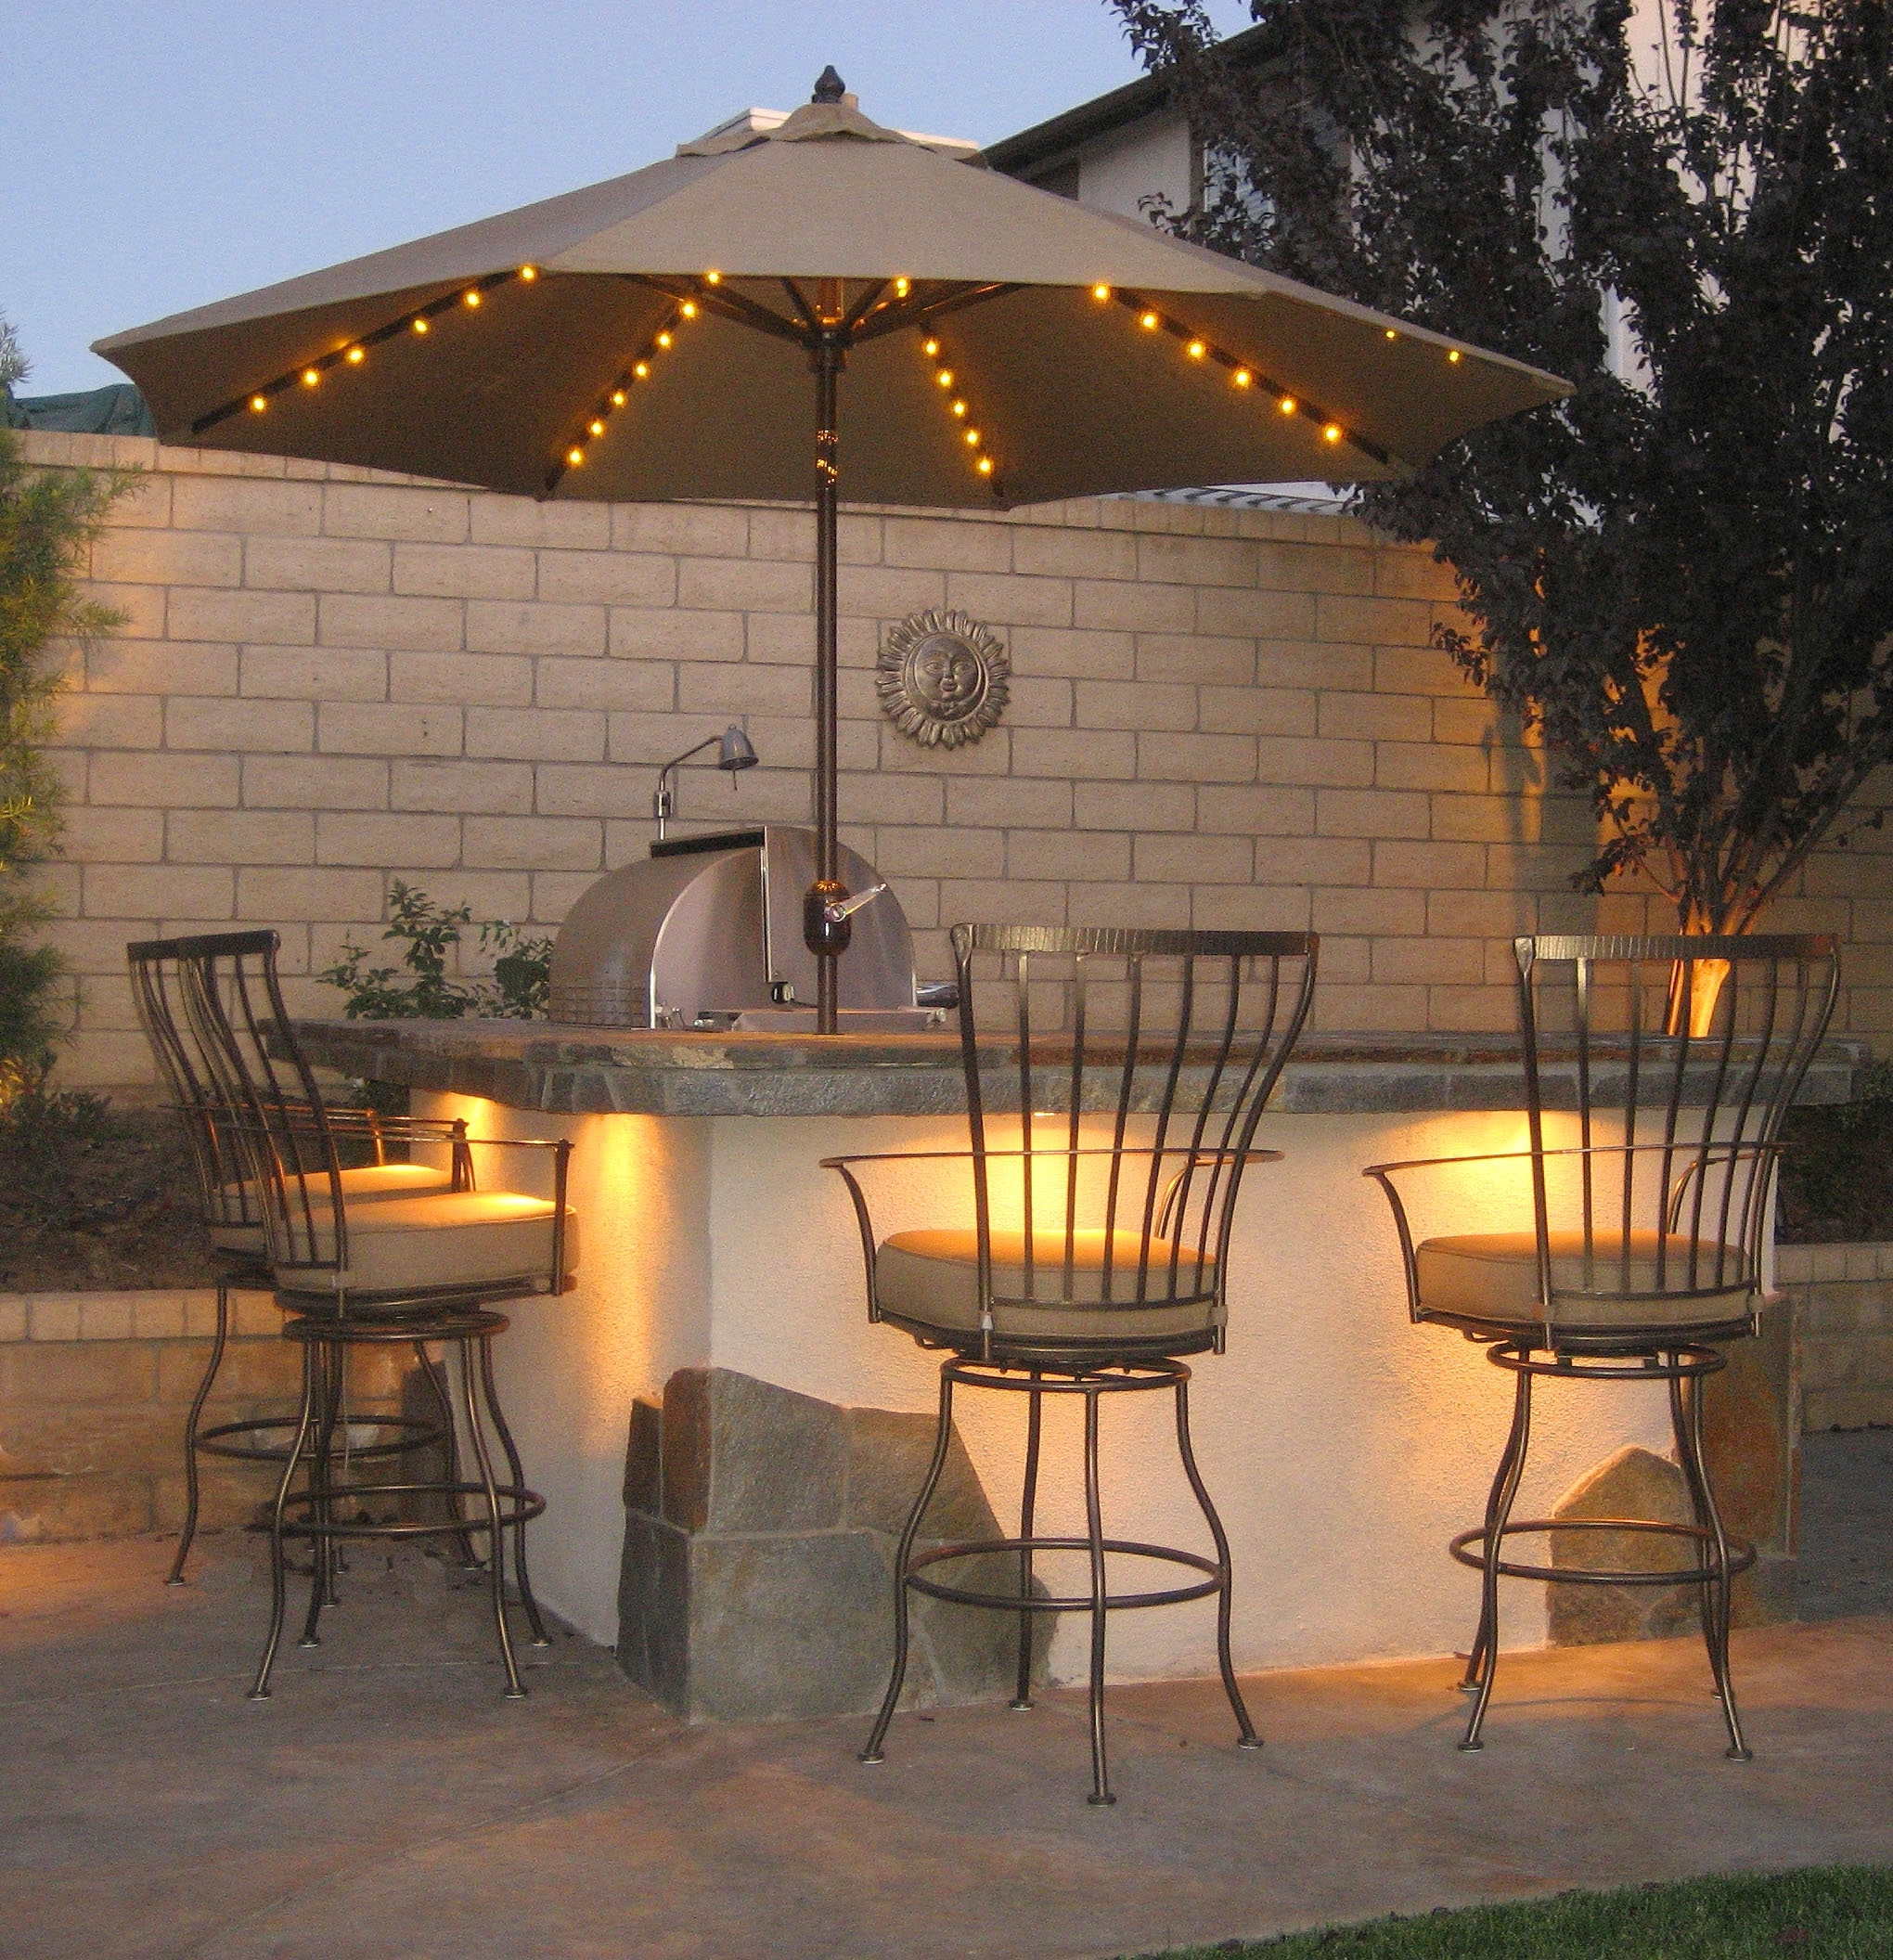 Patio Umbrella Lighting — Mistikcamping Home Design : Different In Current Patio Umbrellas With Led Lights (Gallery 17 of 20)